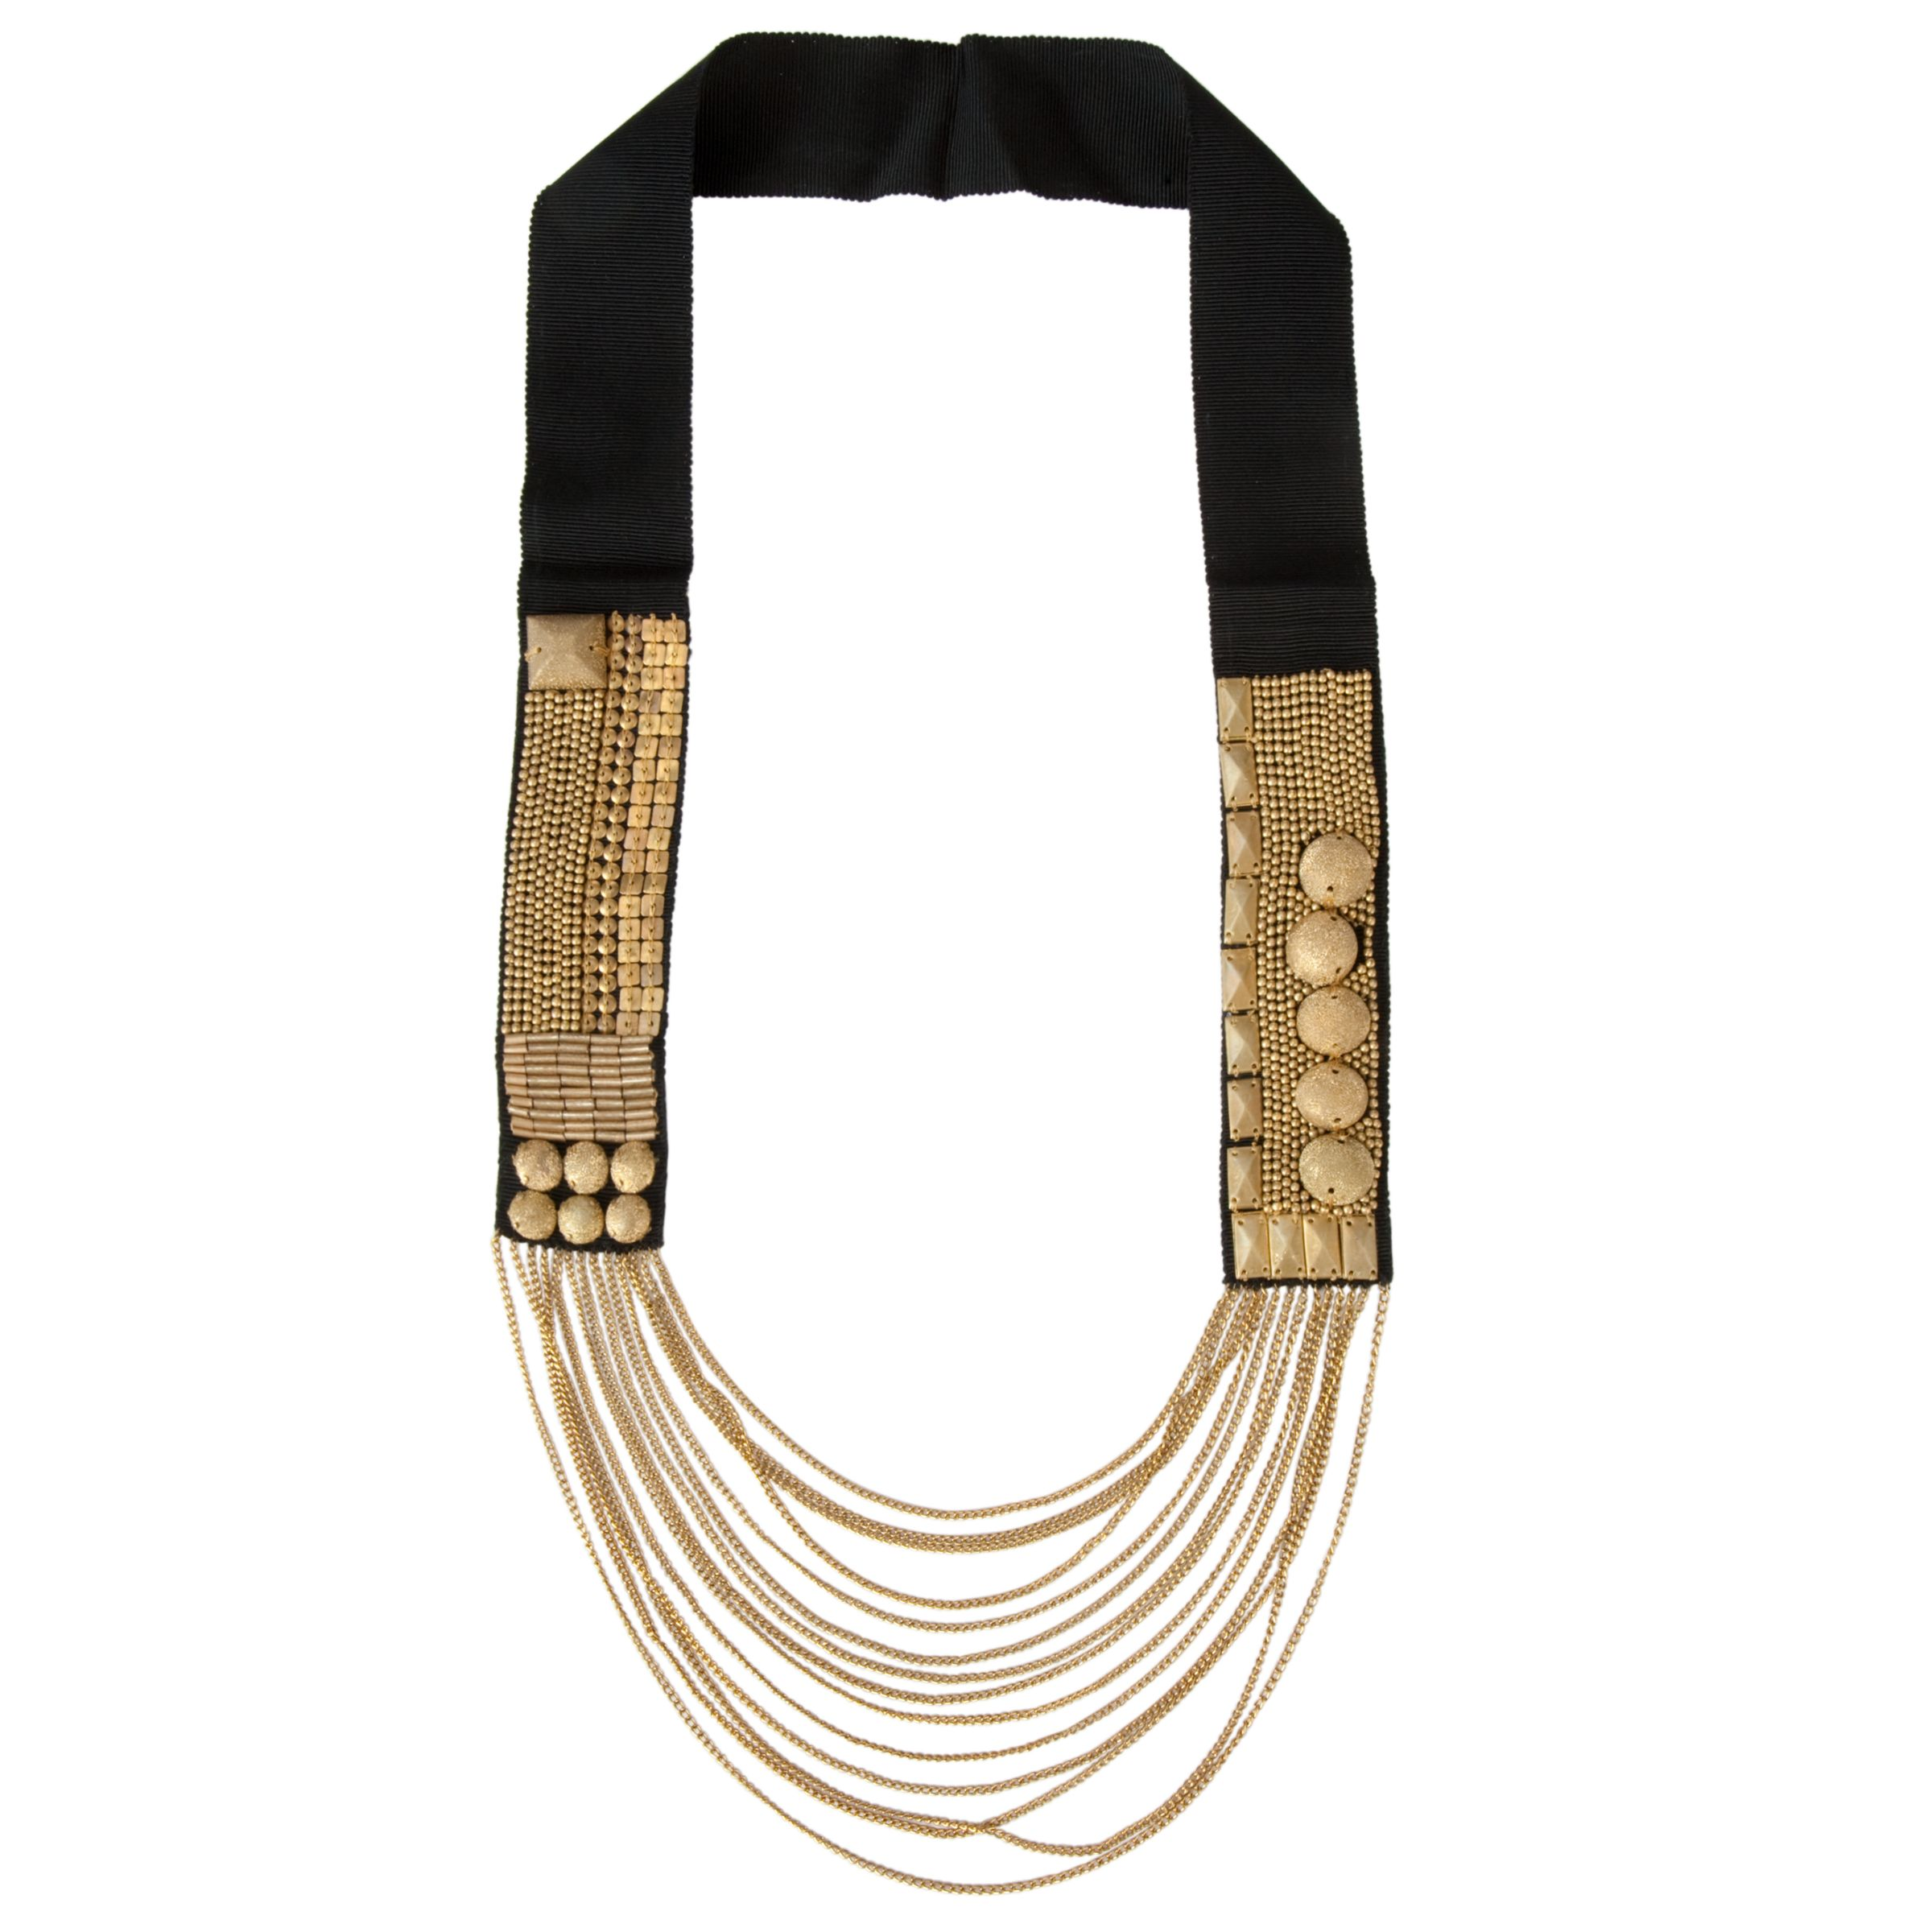 Fiona Paxton Beaded Chain Marjorie Necklace, Black/Gold